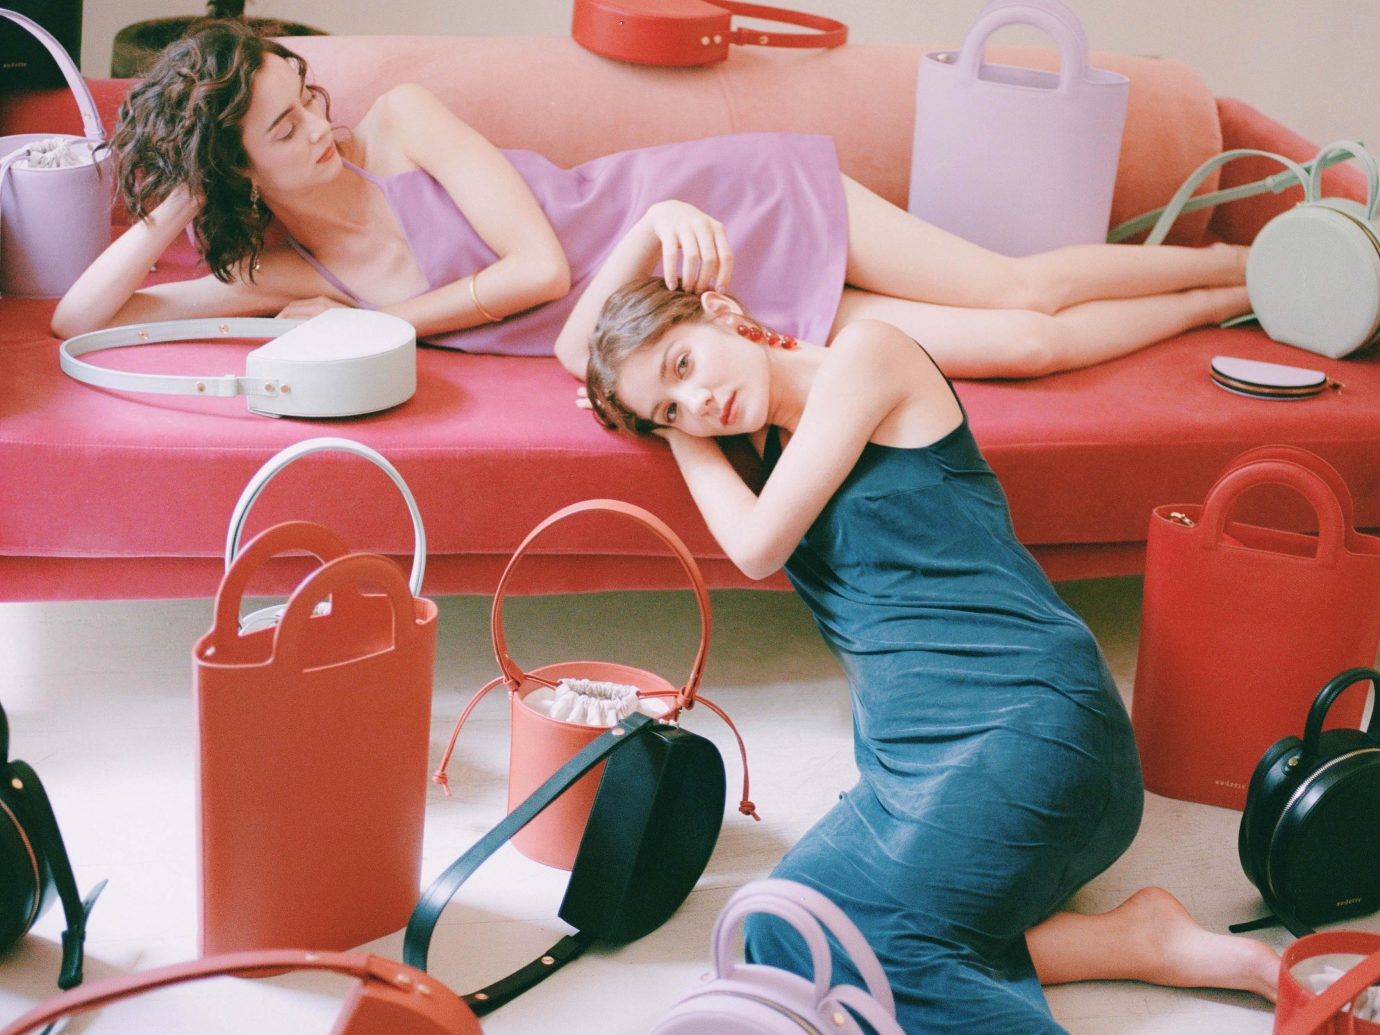 Two women modeling purses on a red couch